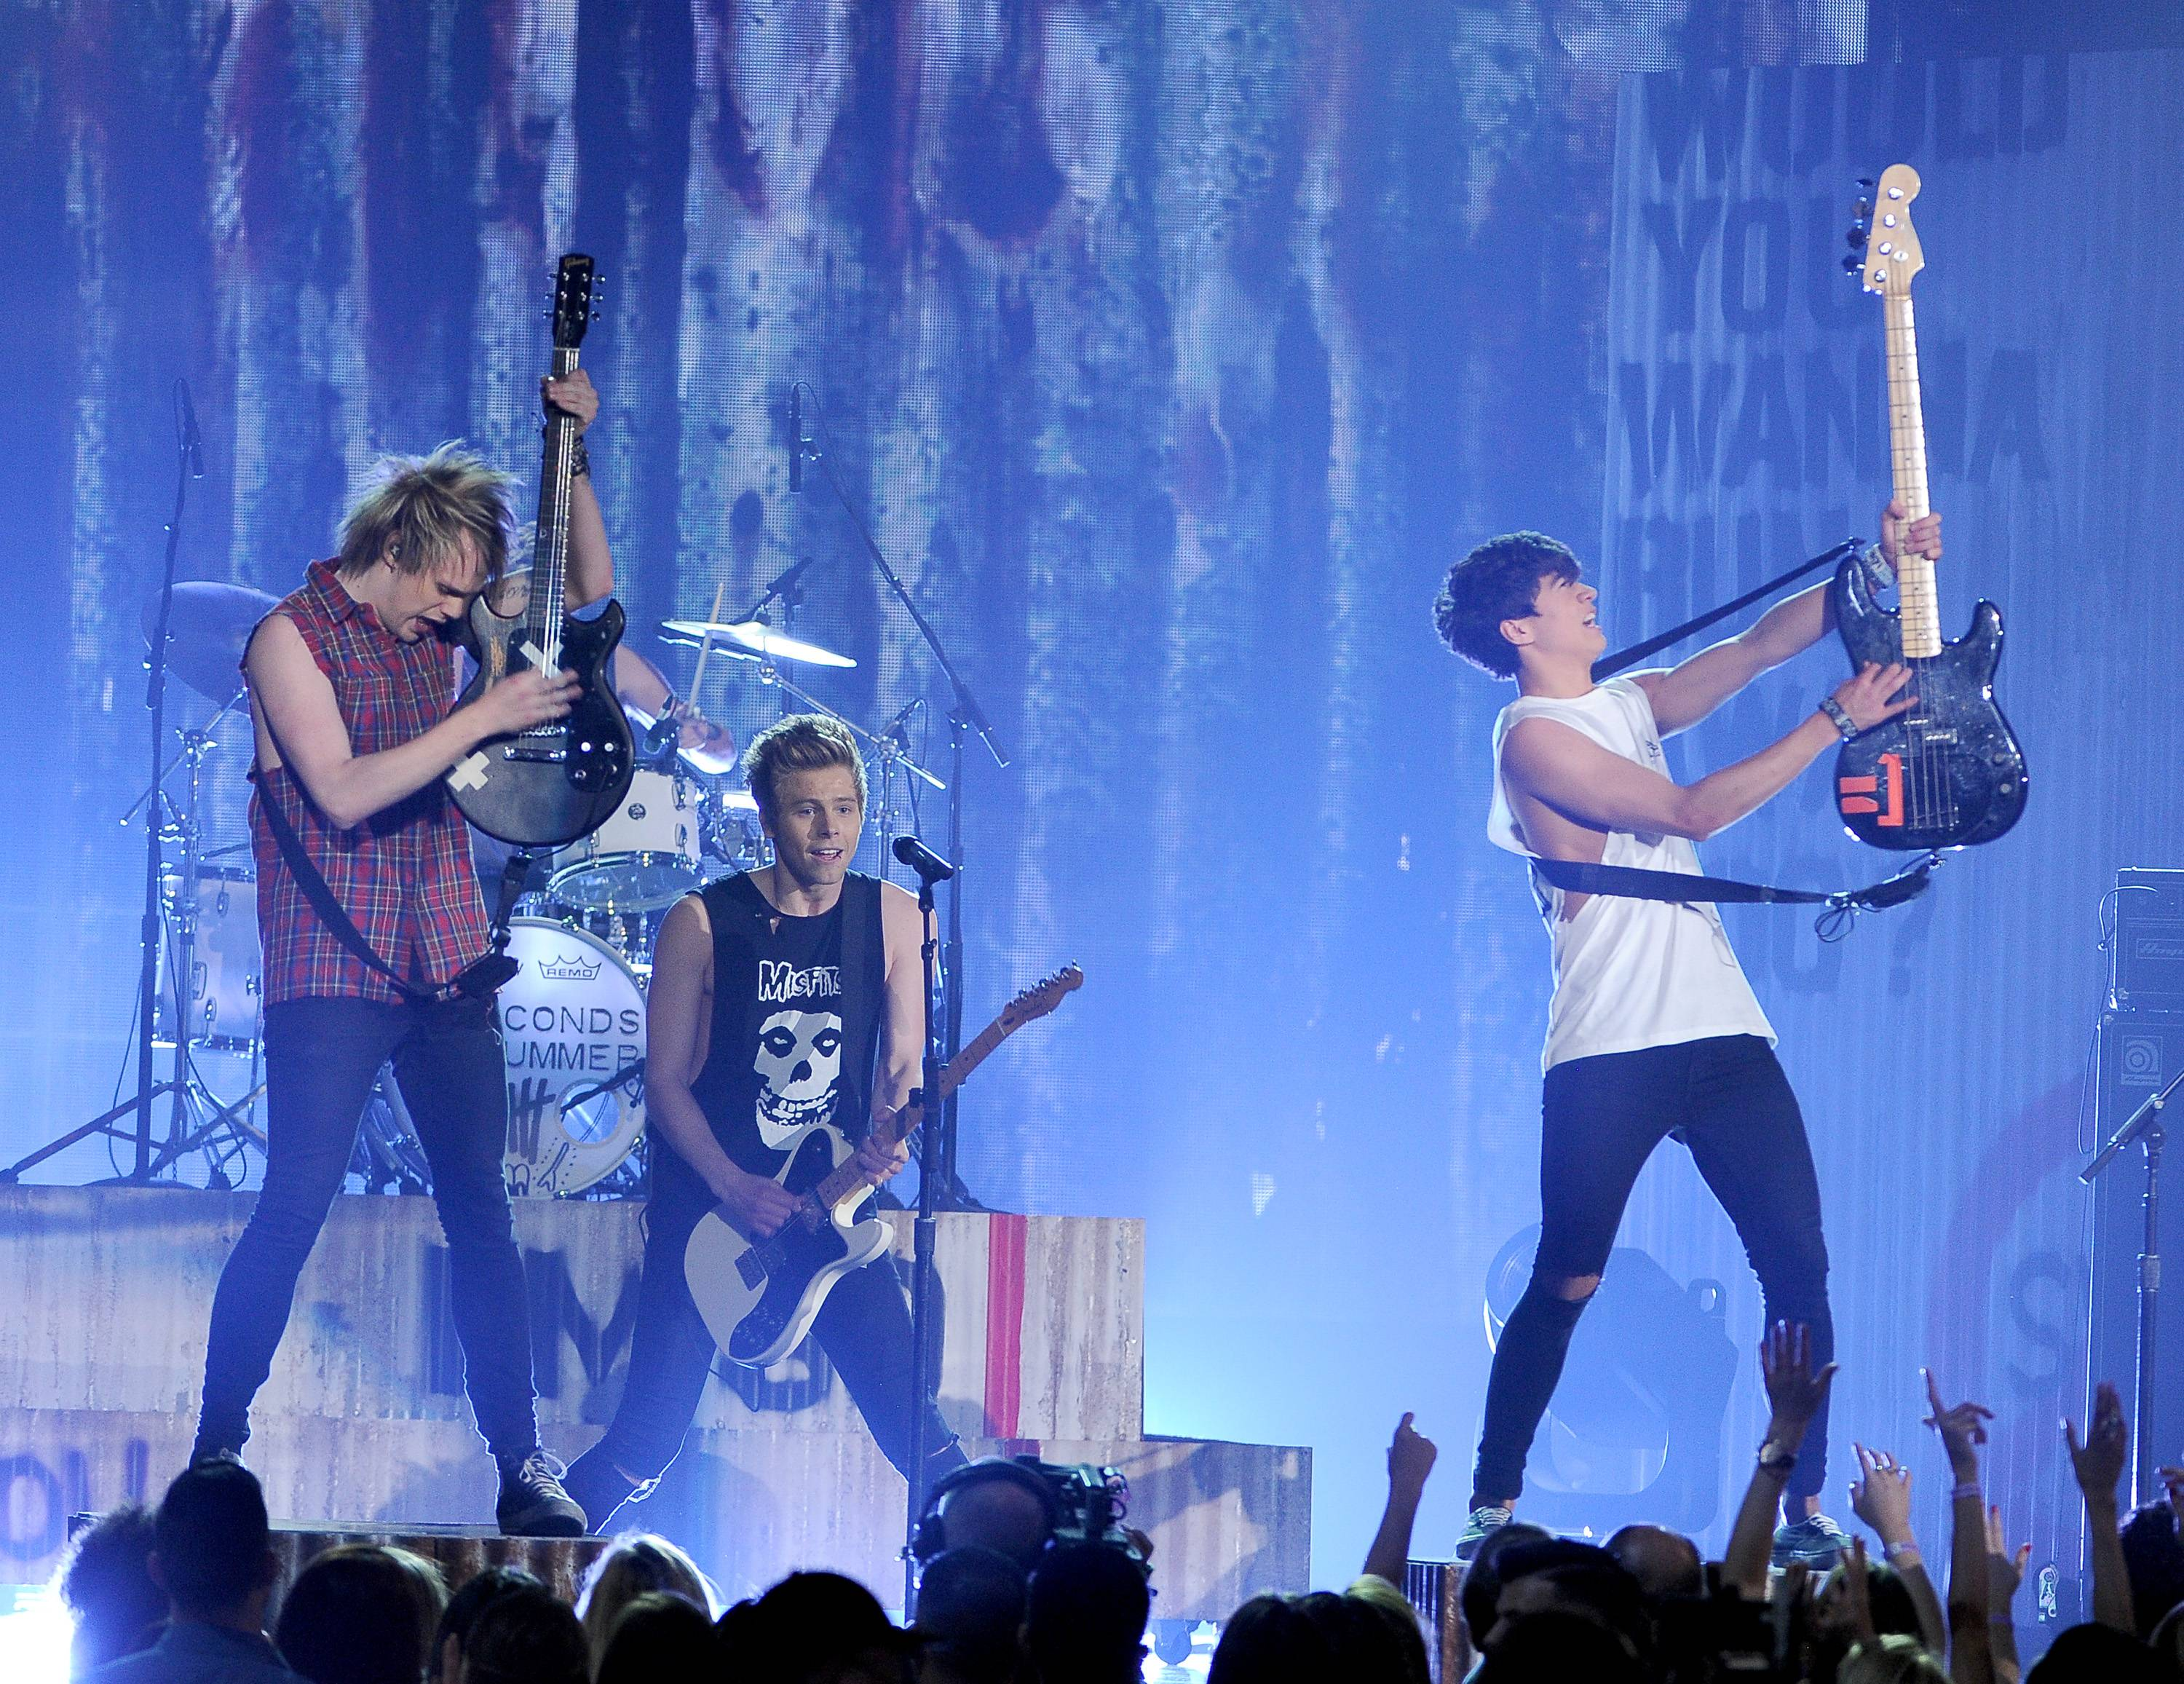 5 Seconds of Summer will perform with One Direction at Chicago's Soldier Field Friday and Saturday, Aug. 29 and 30.